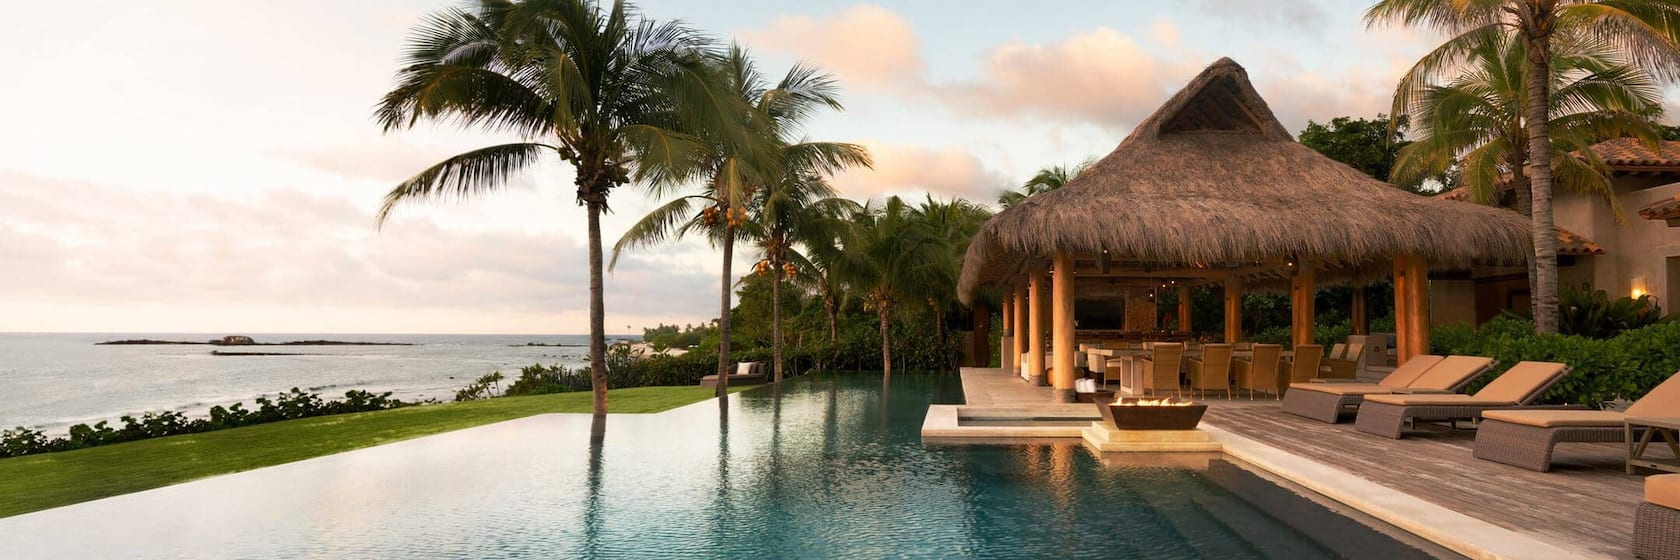 Luxury rentals in Punta Mita